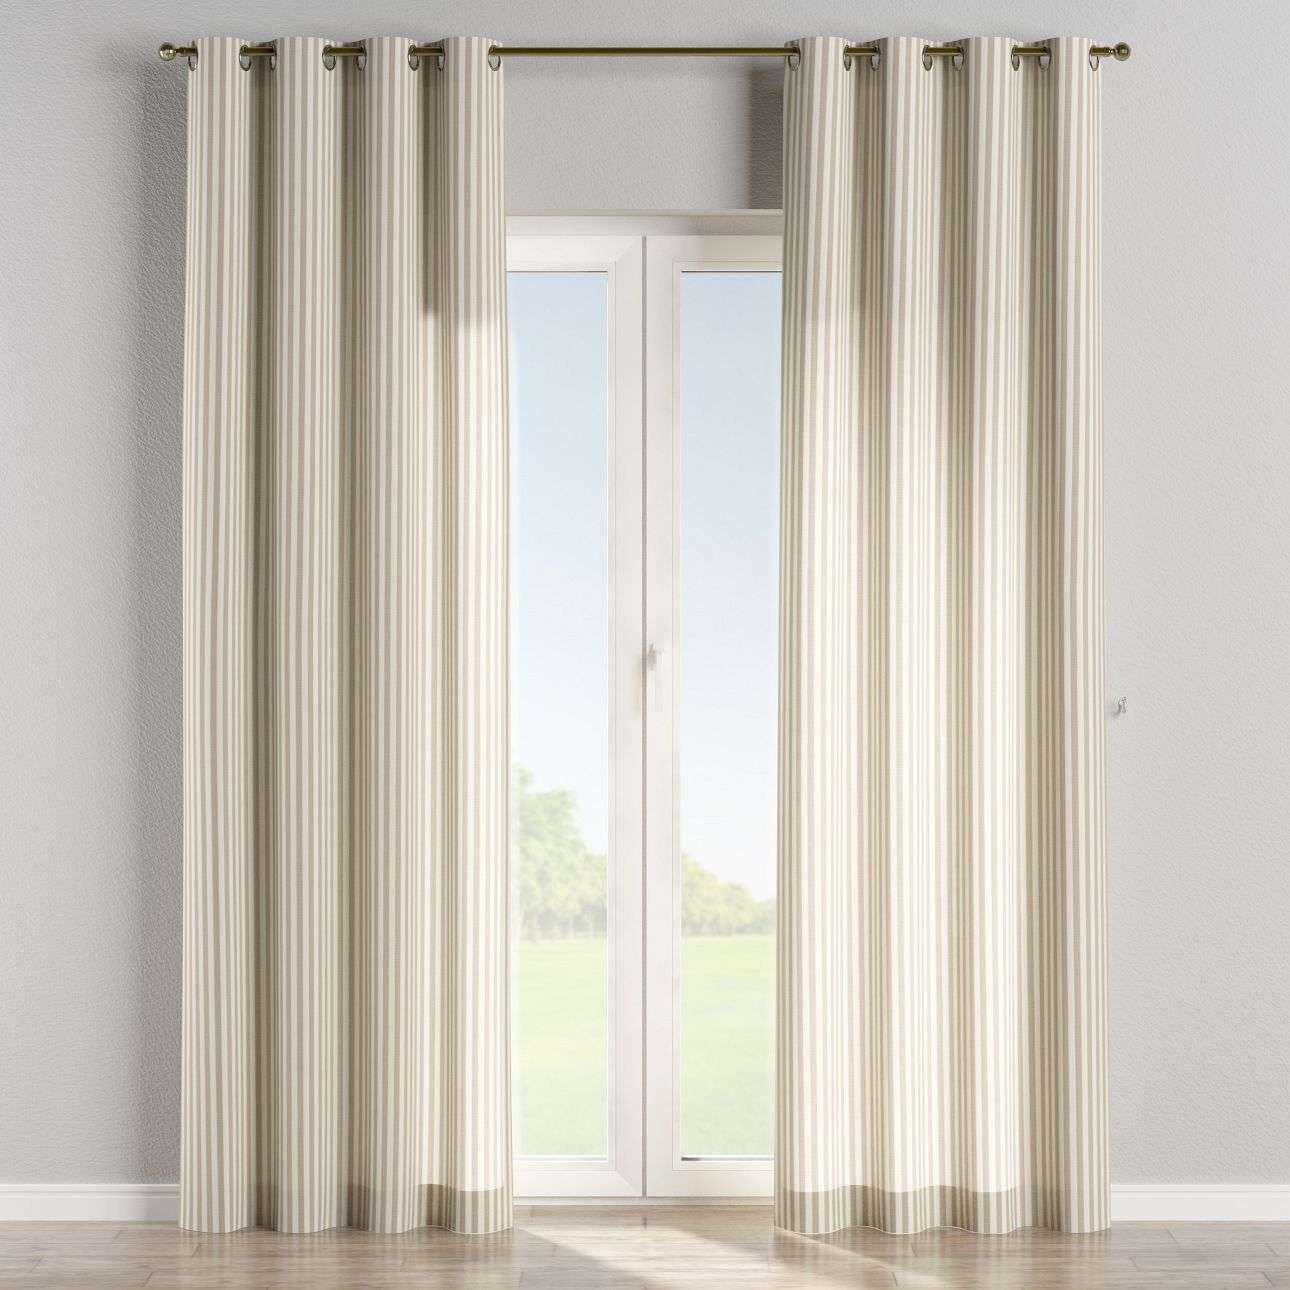 Eyelet curtains in collection Quadro, fabric: 136-07